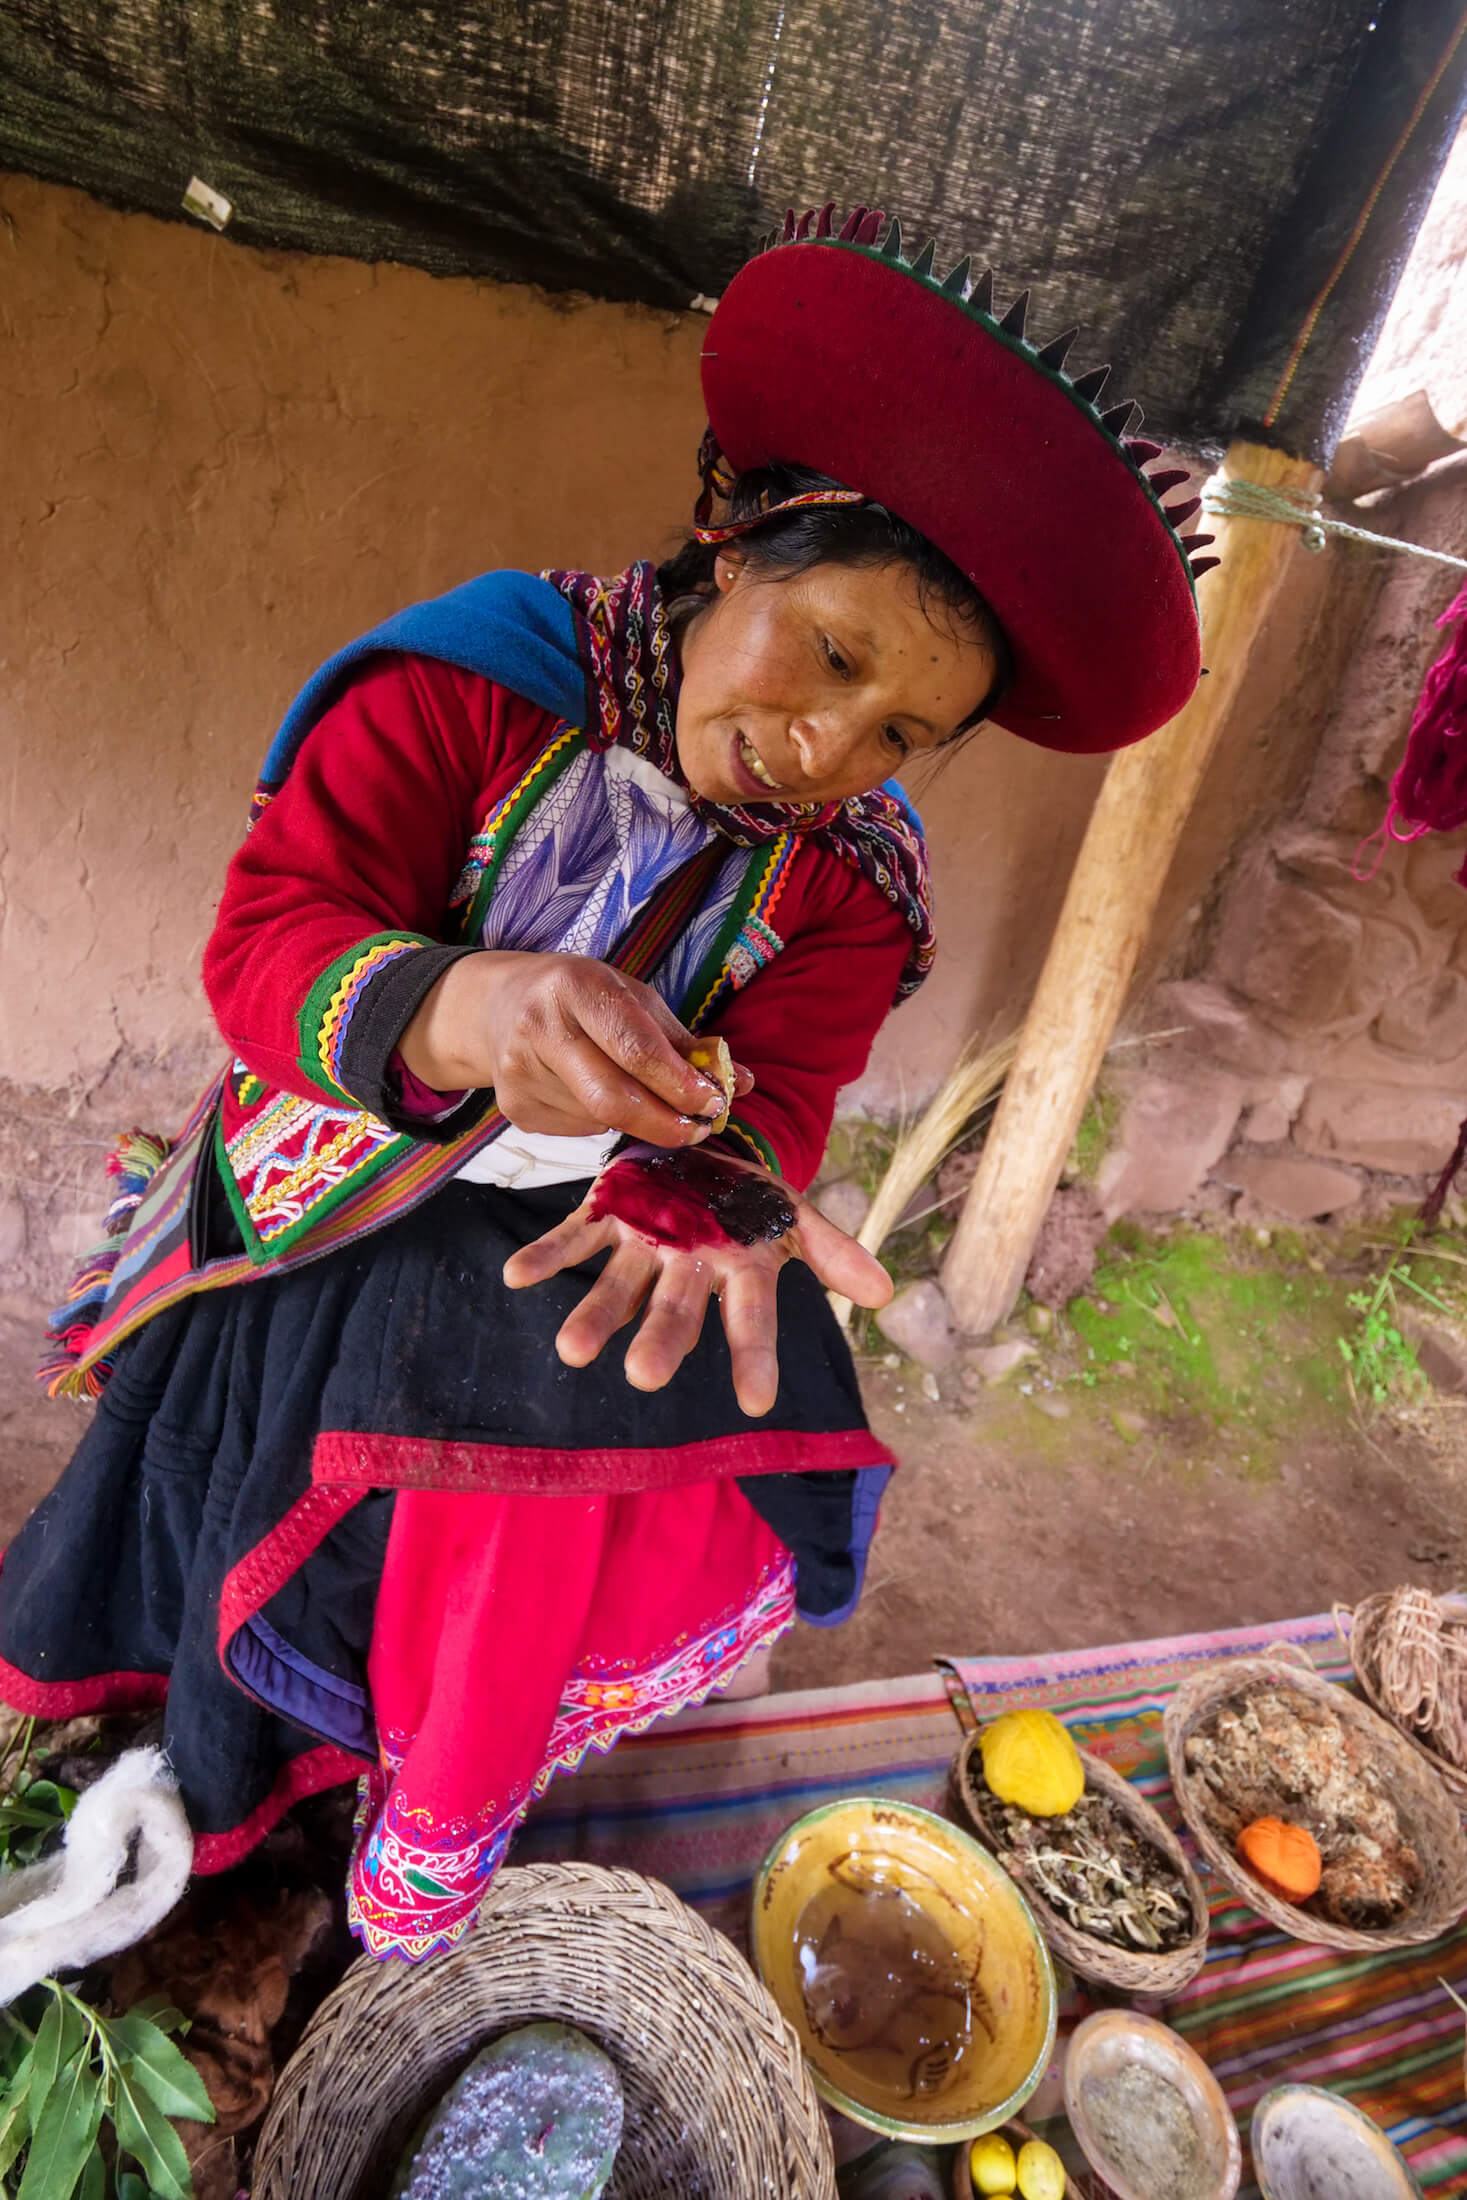 colorful dyes from nature are a key part in the Quechua heritage as they allow the clothes to tell stories